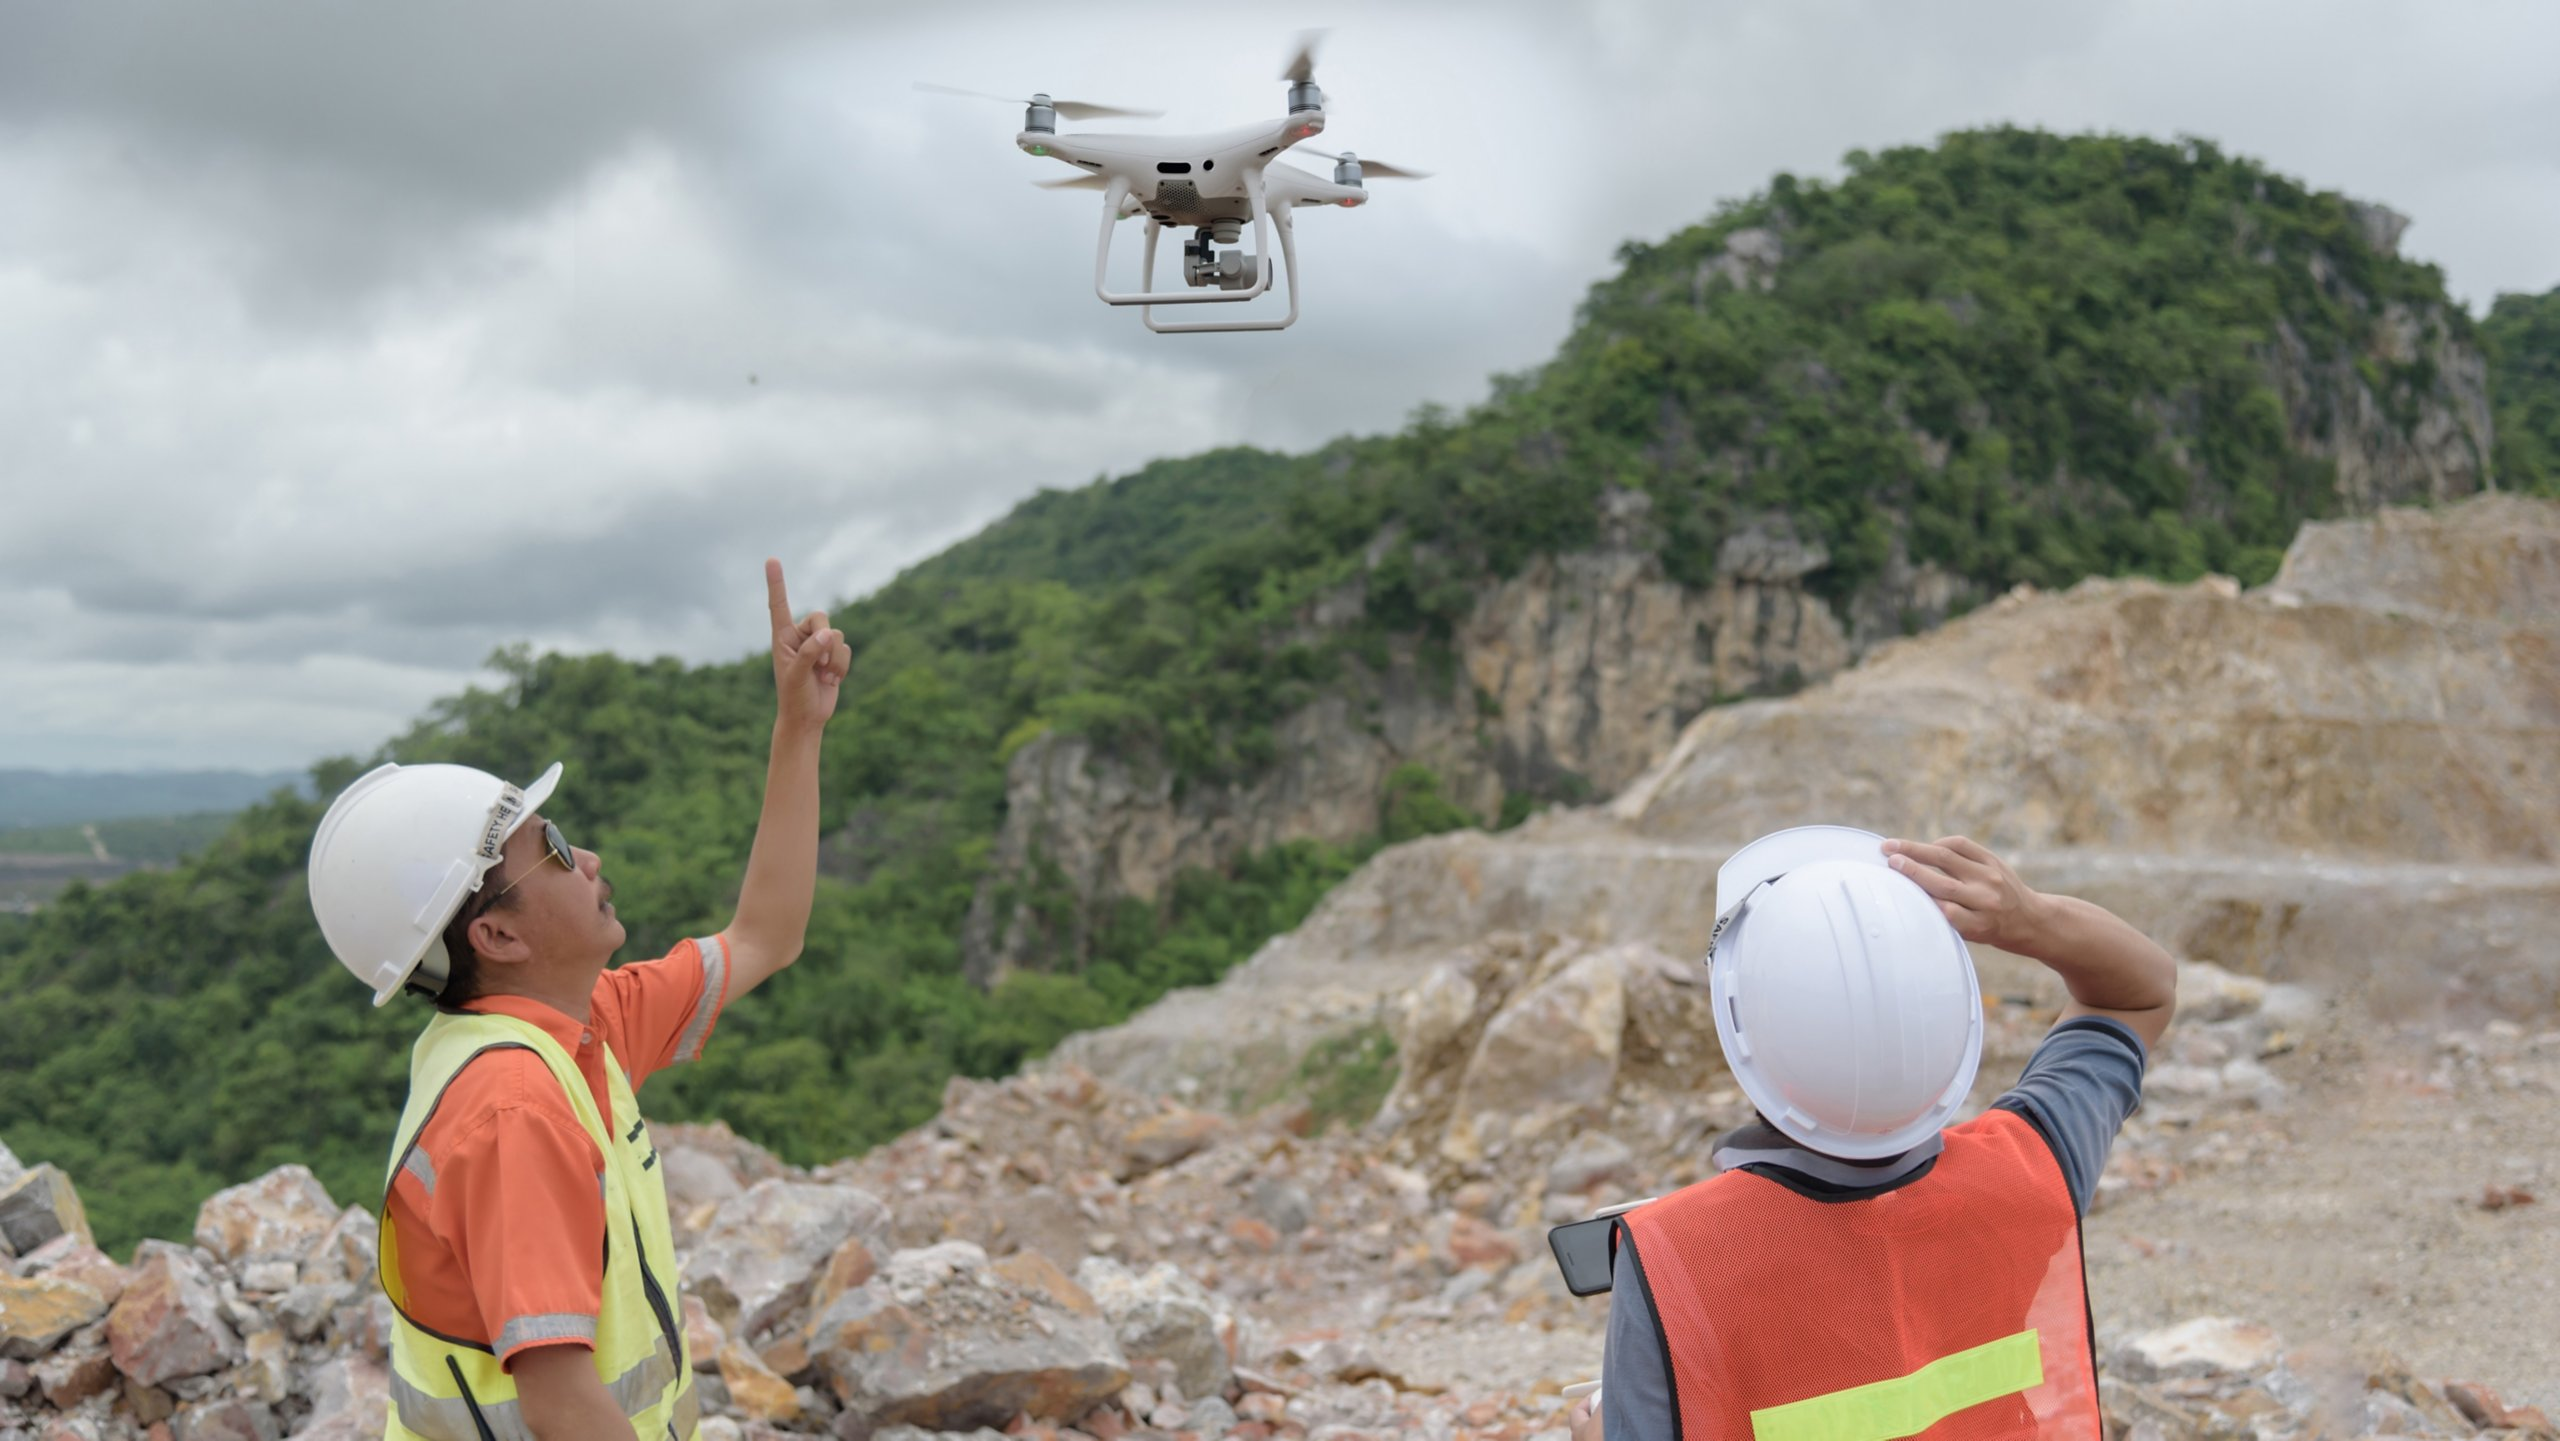 Man Operating Drone Flying by Remote Control to work at site rock mining.